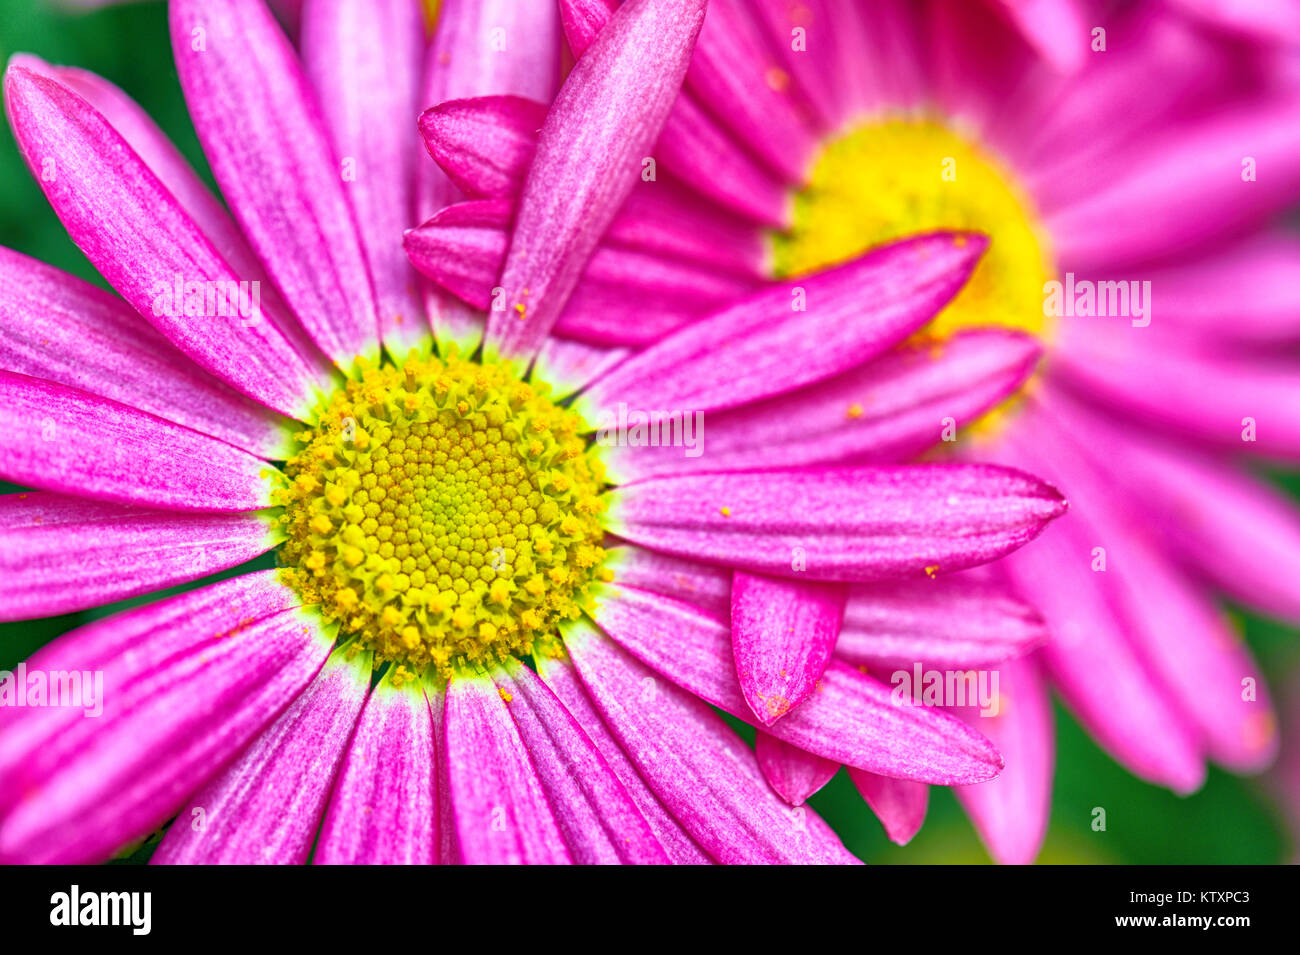 Flowers Of The World - Daisies, Spring and Summer - Stock Image